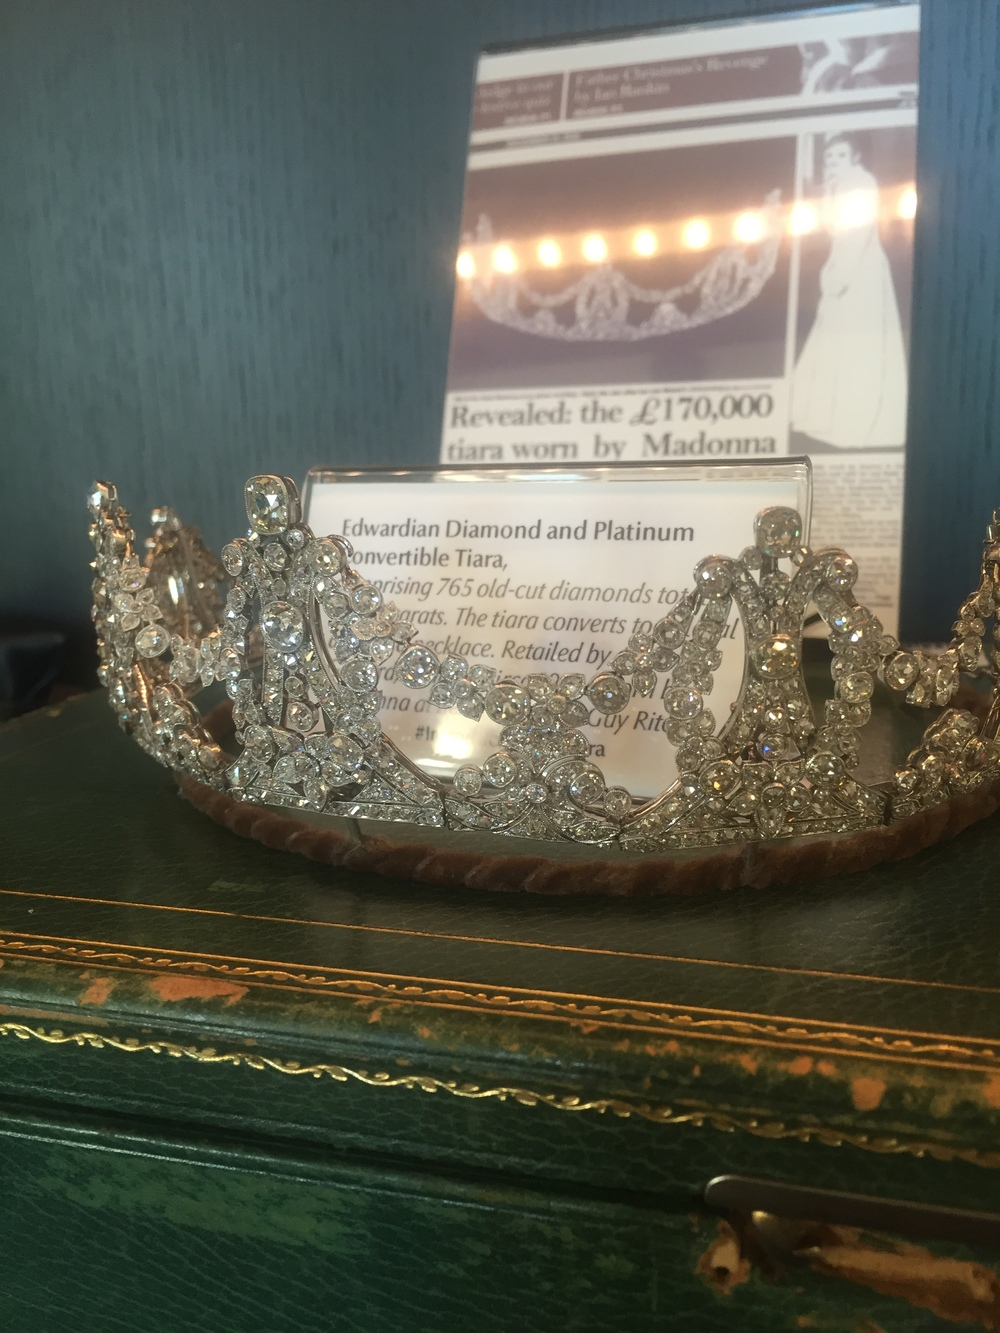 Tiaras for, like, brunch, etc.